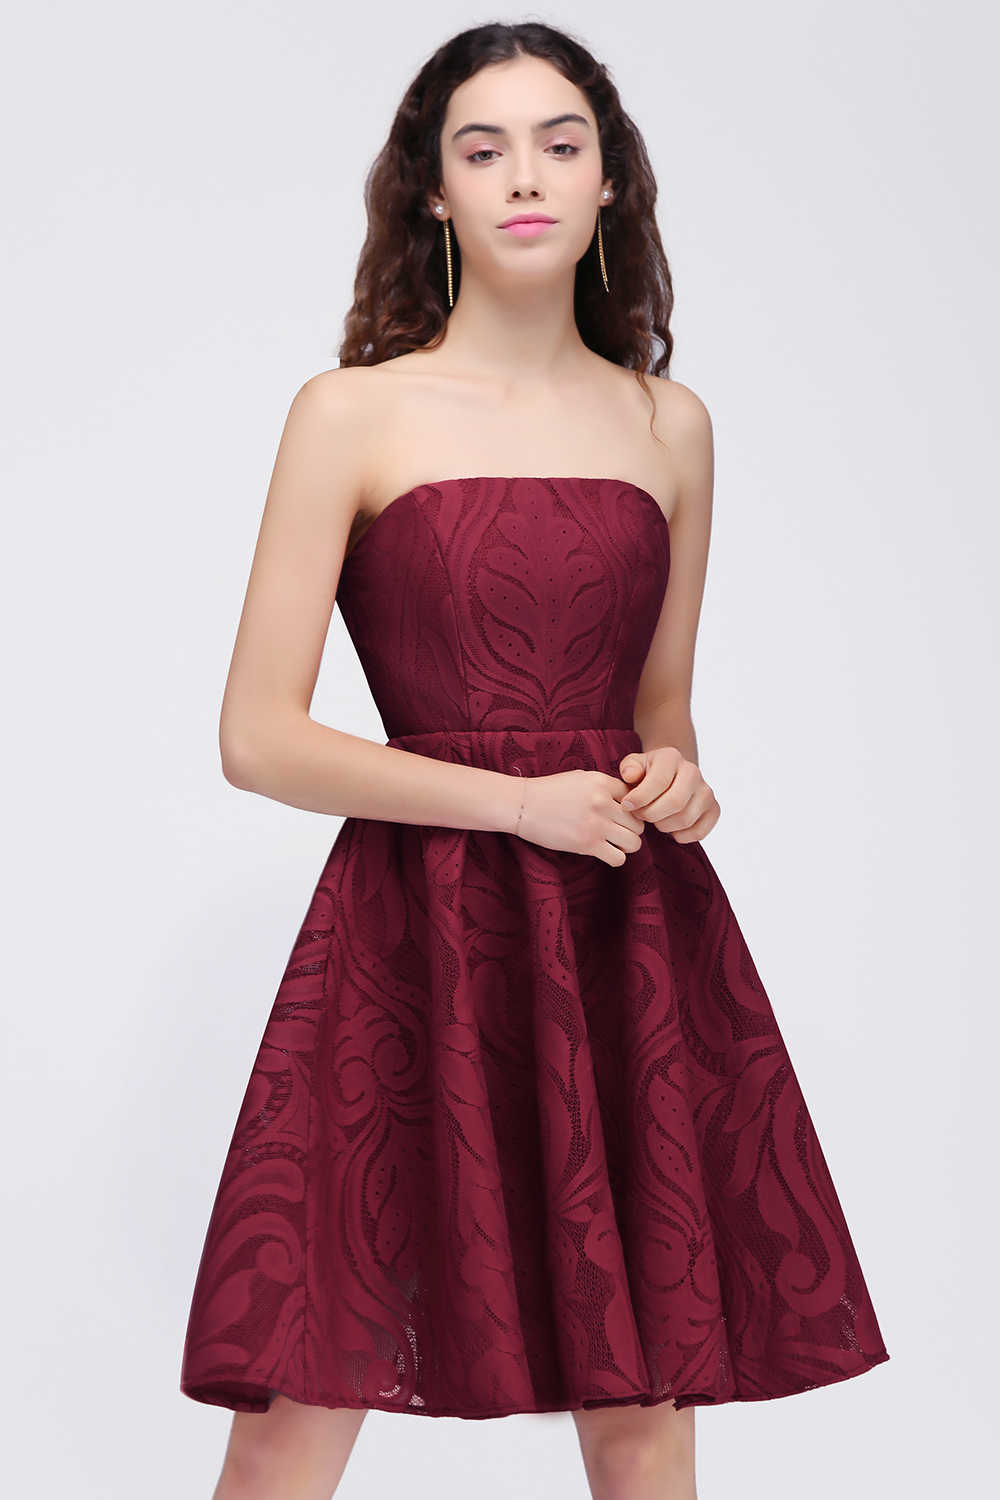 ab8cb0c7185b8 ... Sexy Vestido 15 ano curto Burgundy Lace Homecoming Dresses 2019 Floral  Print 8th Grade Graduation Dress ...